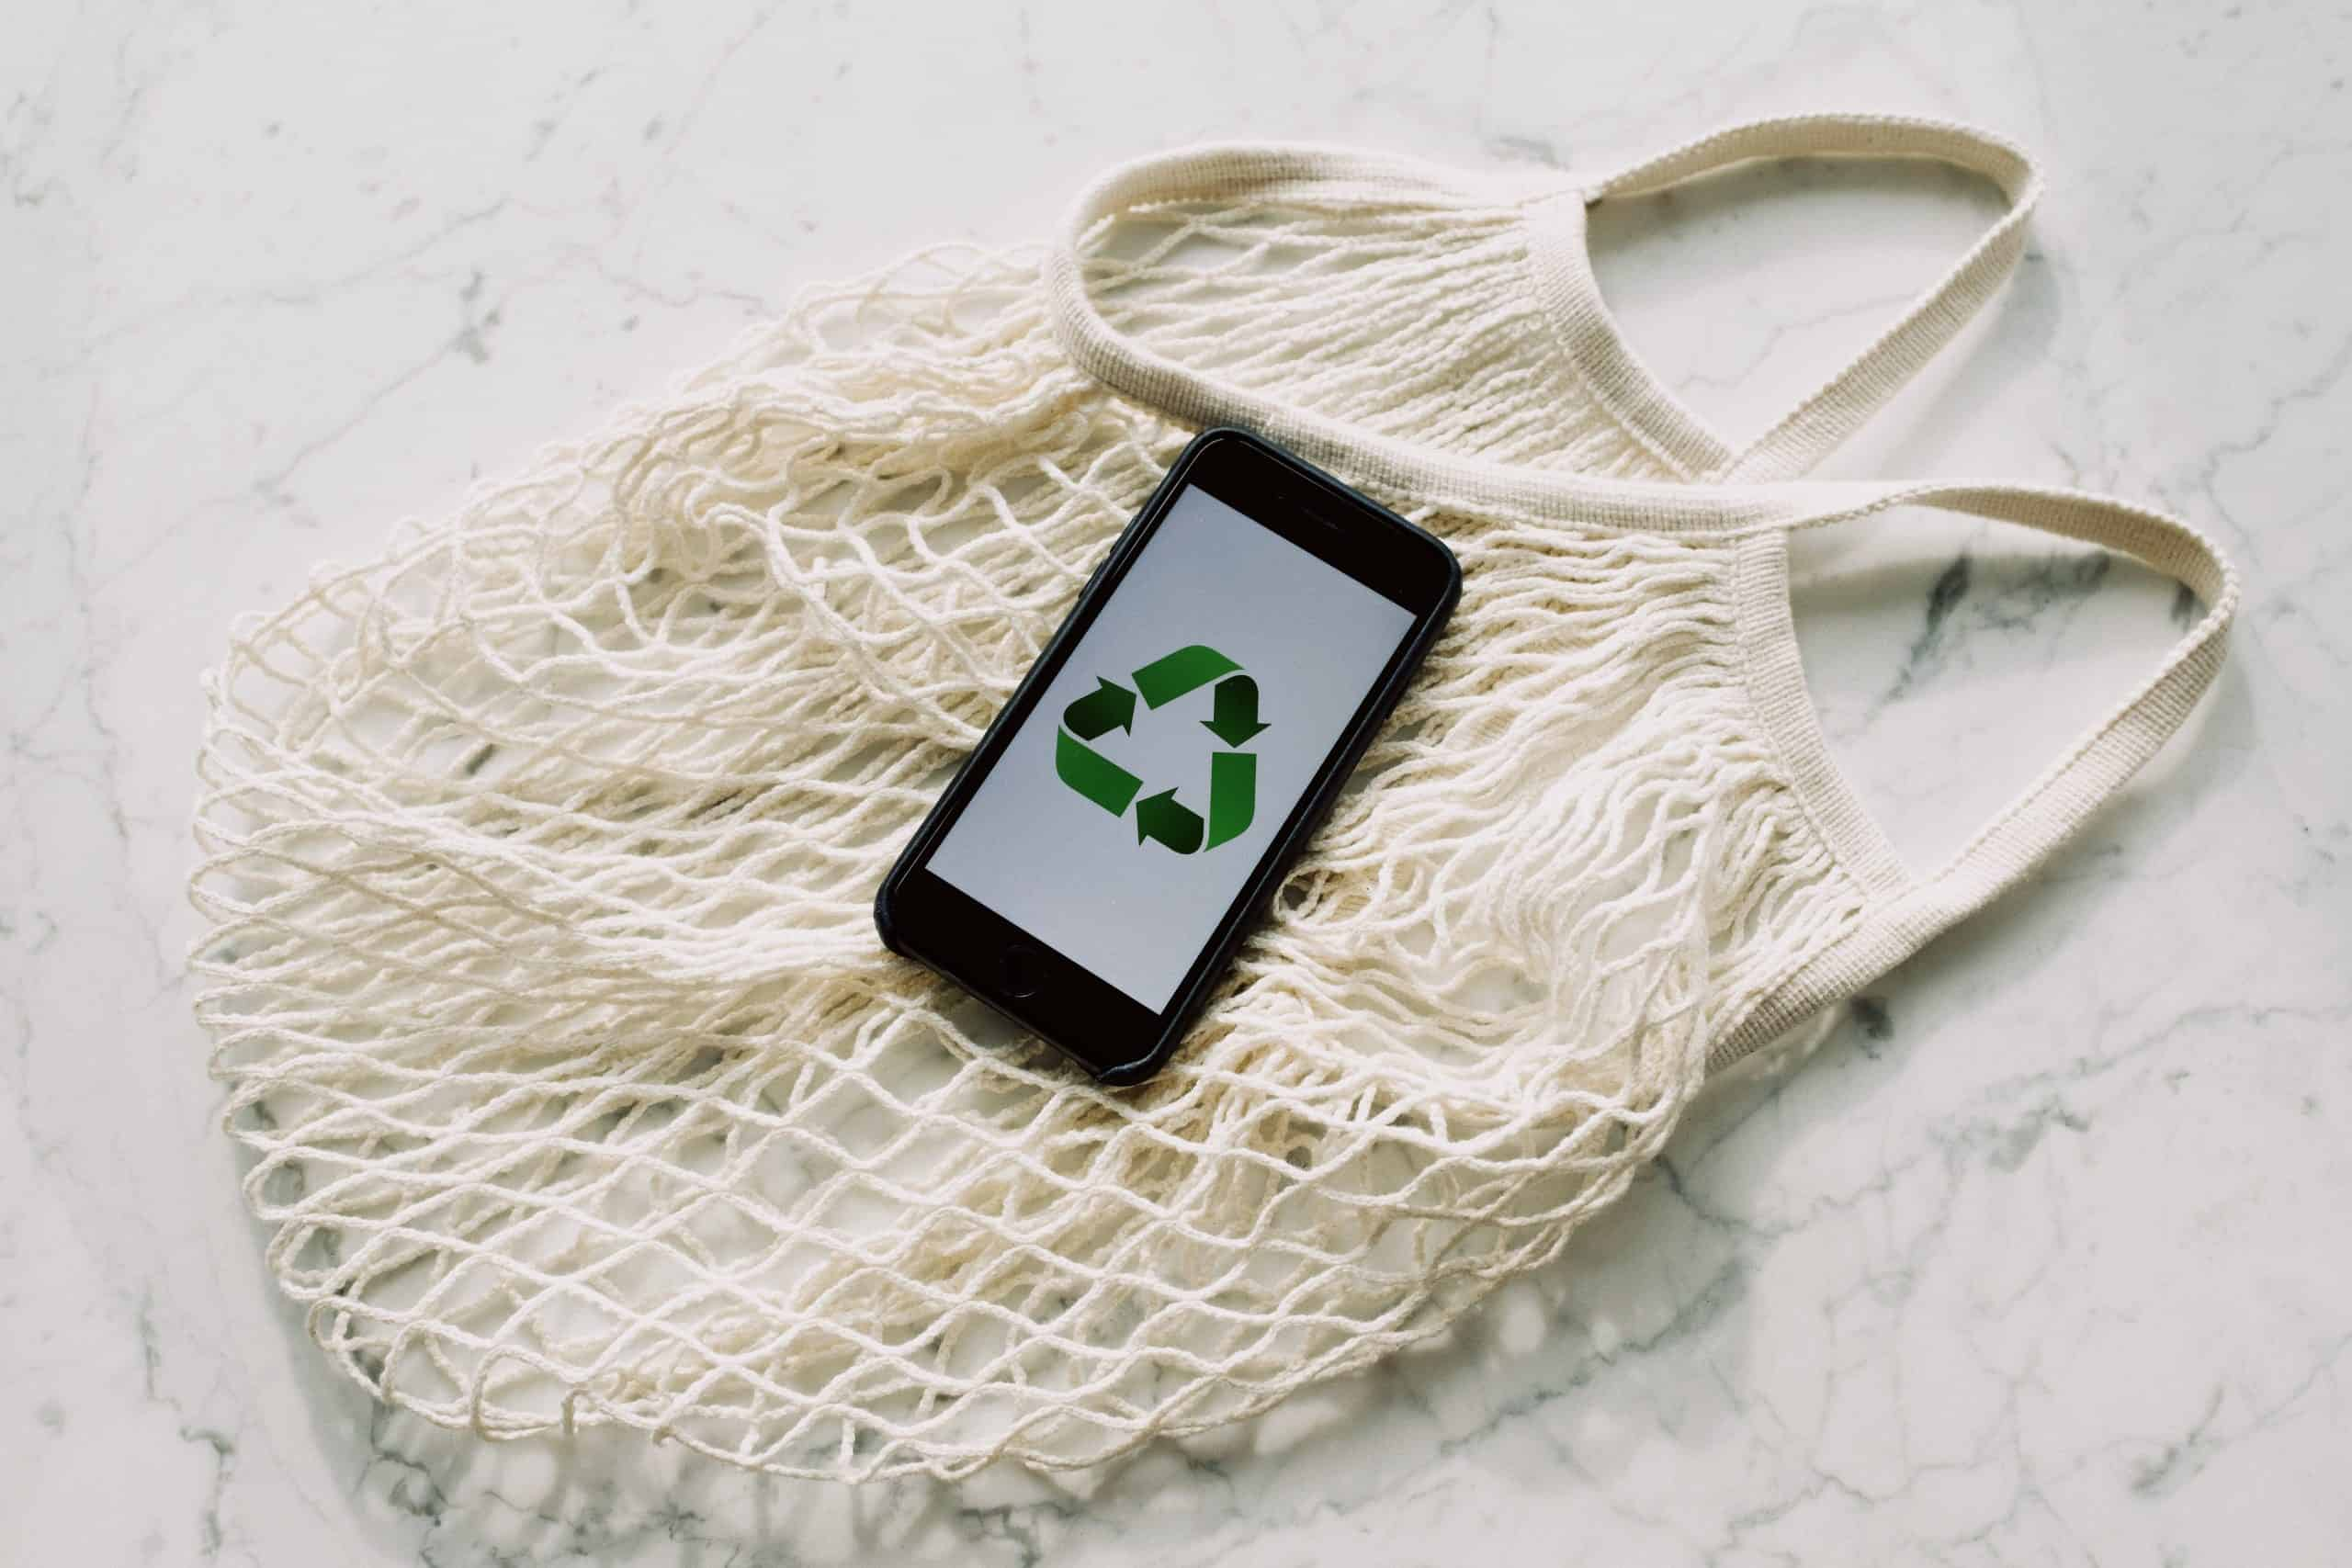 Is E-waste Recycling Essential? WHY?